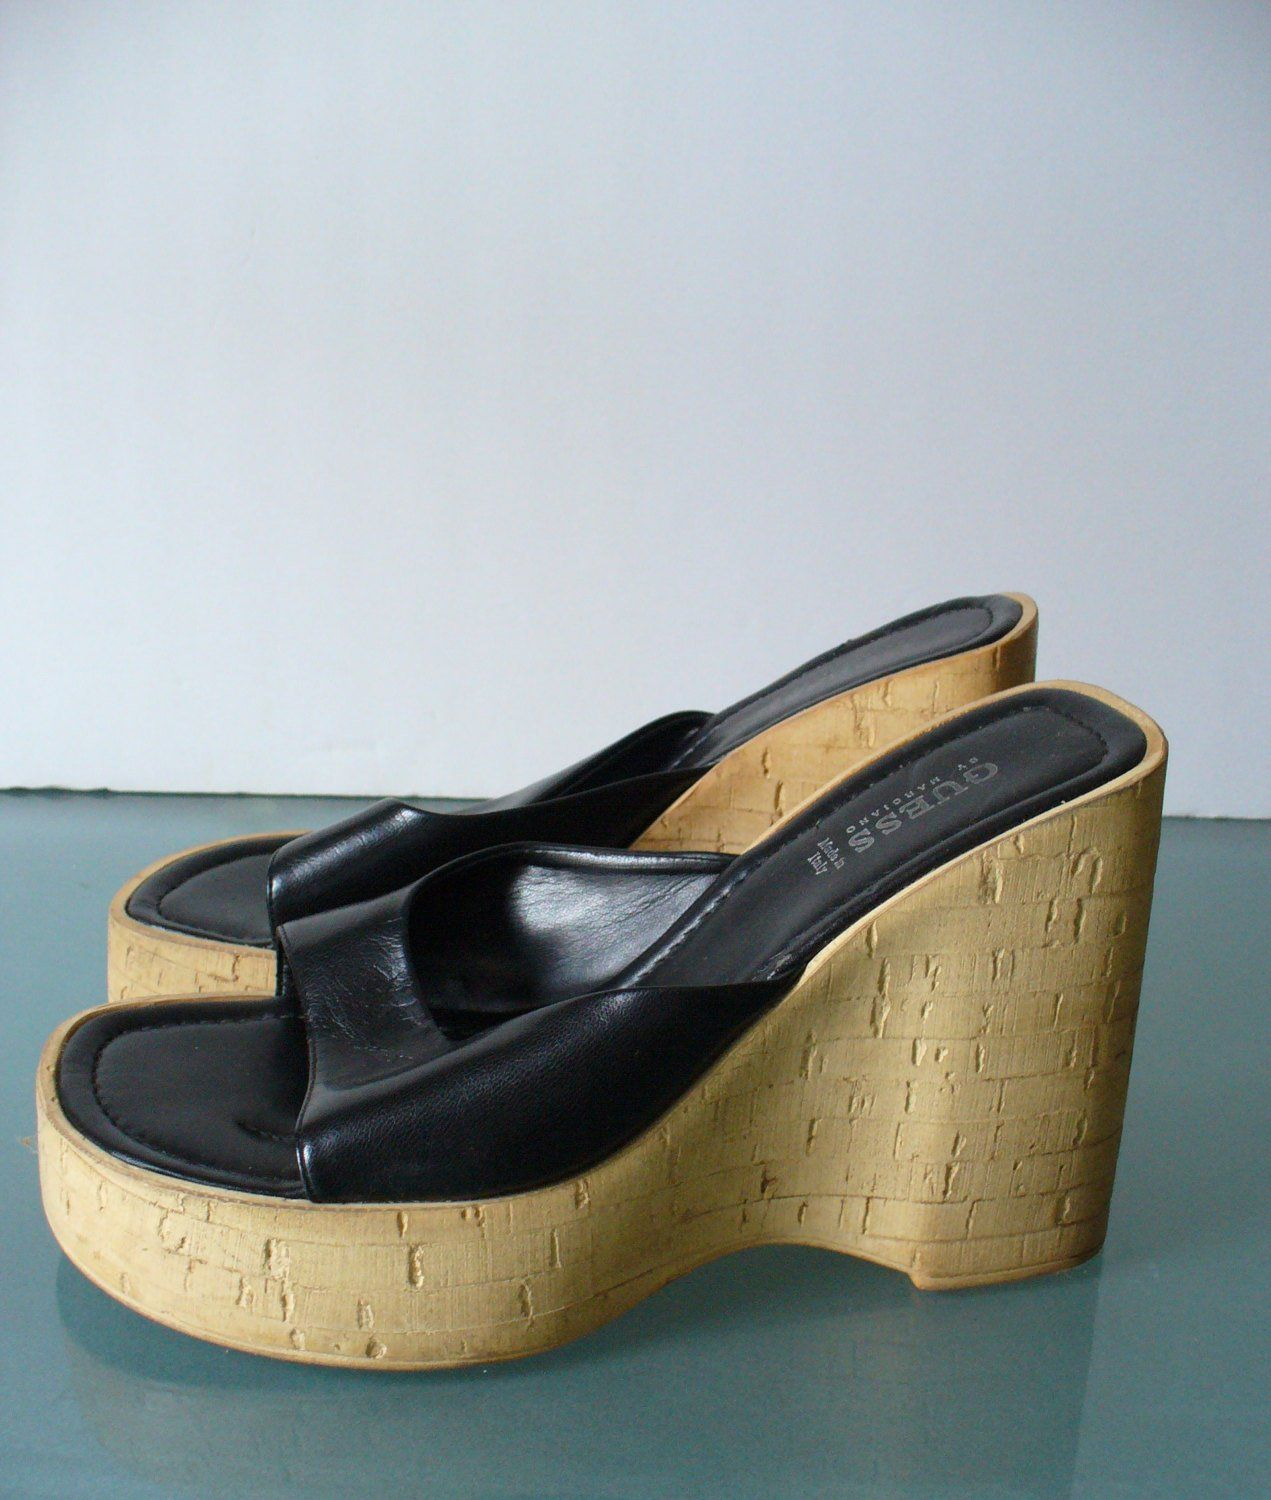 ea866c2980e Guess Made in Italy Cork & Leather Platform Sandals Size 9 US in ...